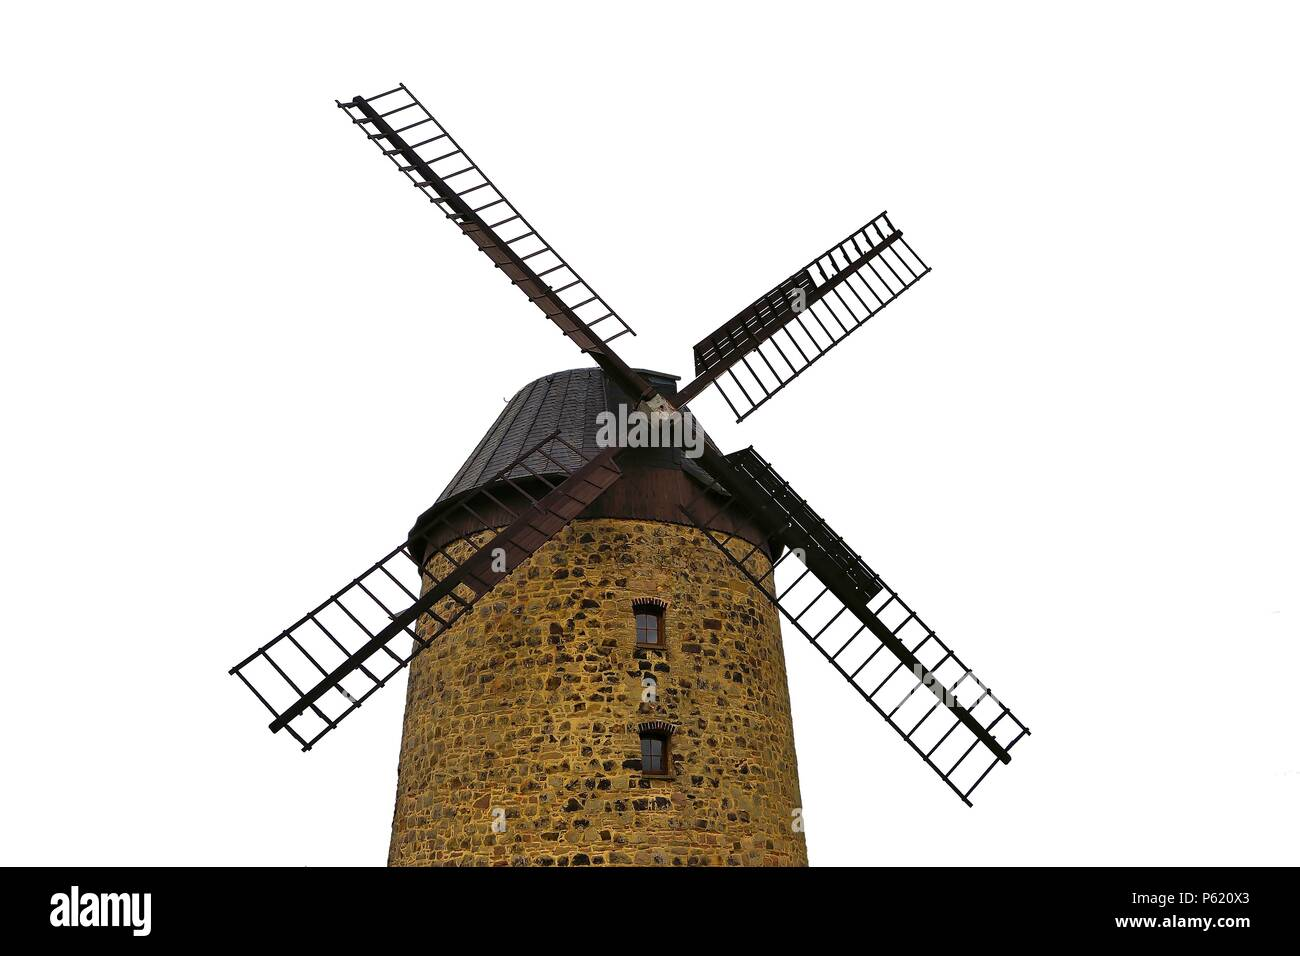 Windmill in Warnstedt in Germany - Stock Image